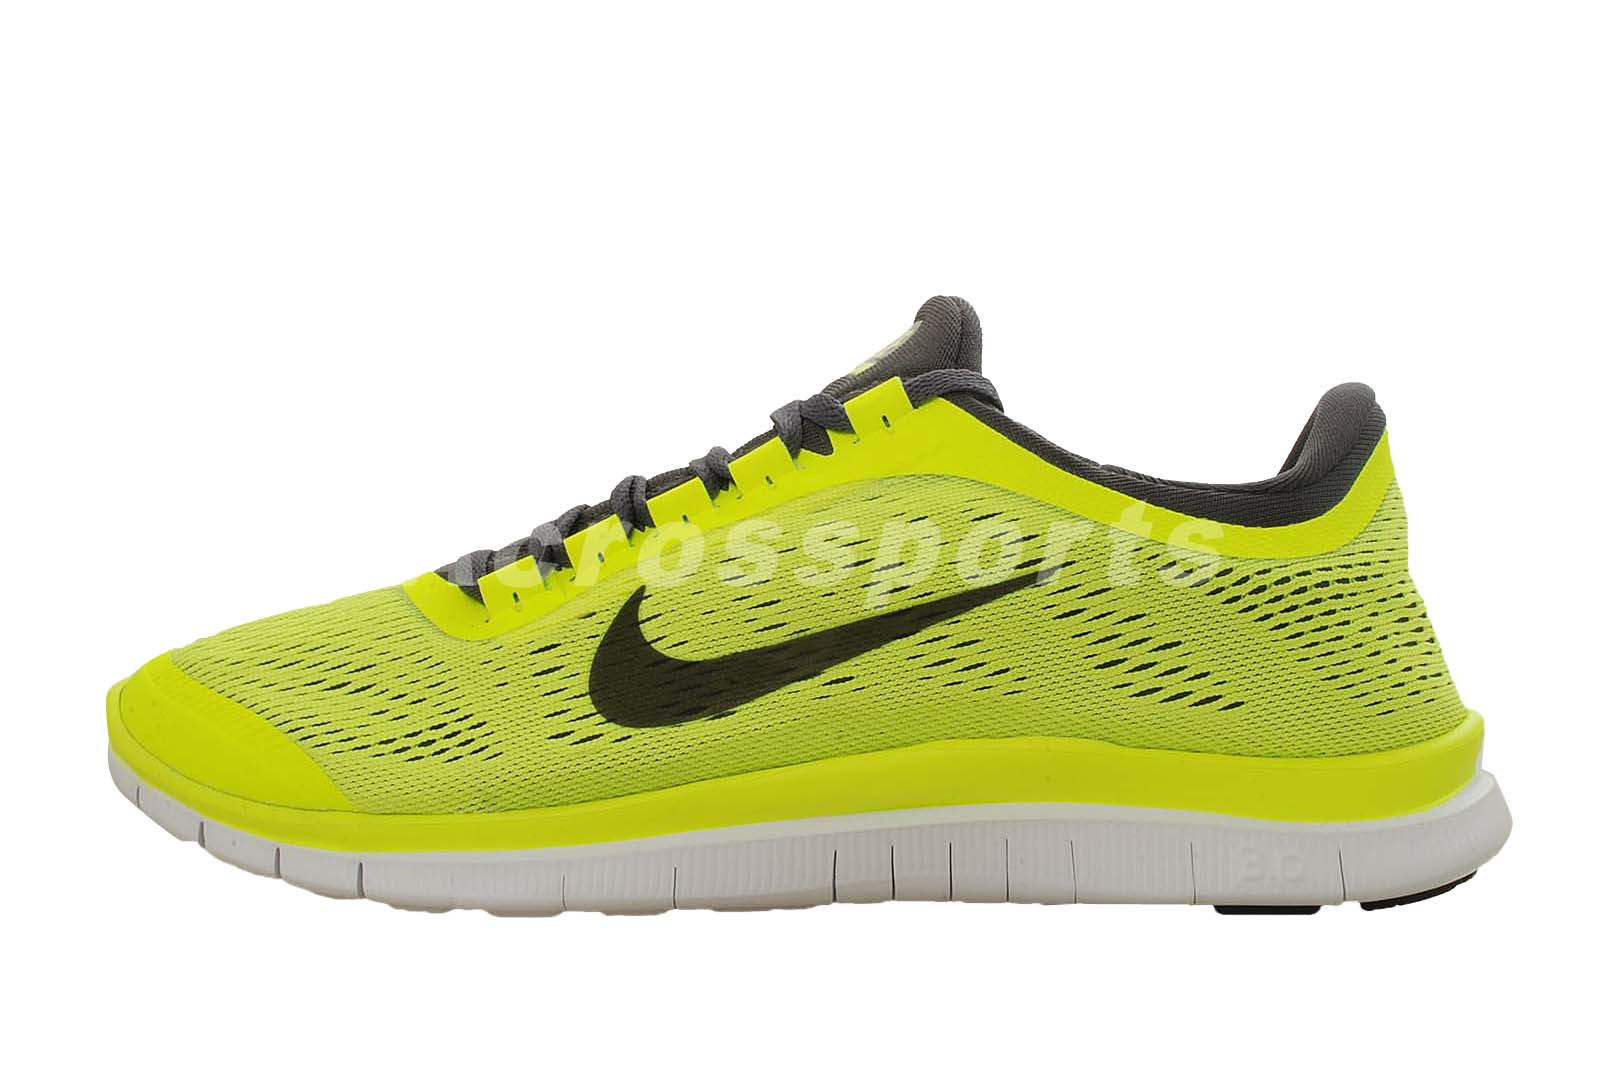 Nike Free 3.0 V5 2013 Run 3 Mens Running Shoes Lightweight ...